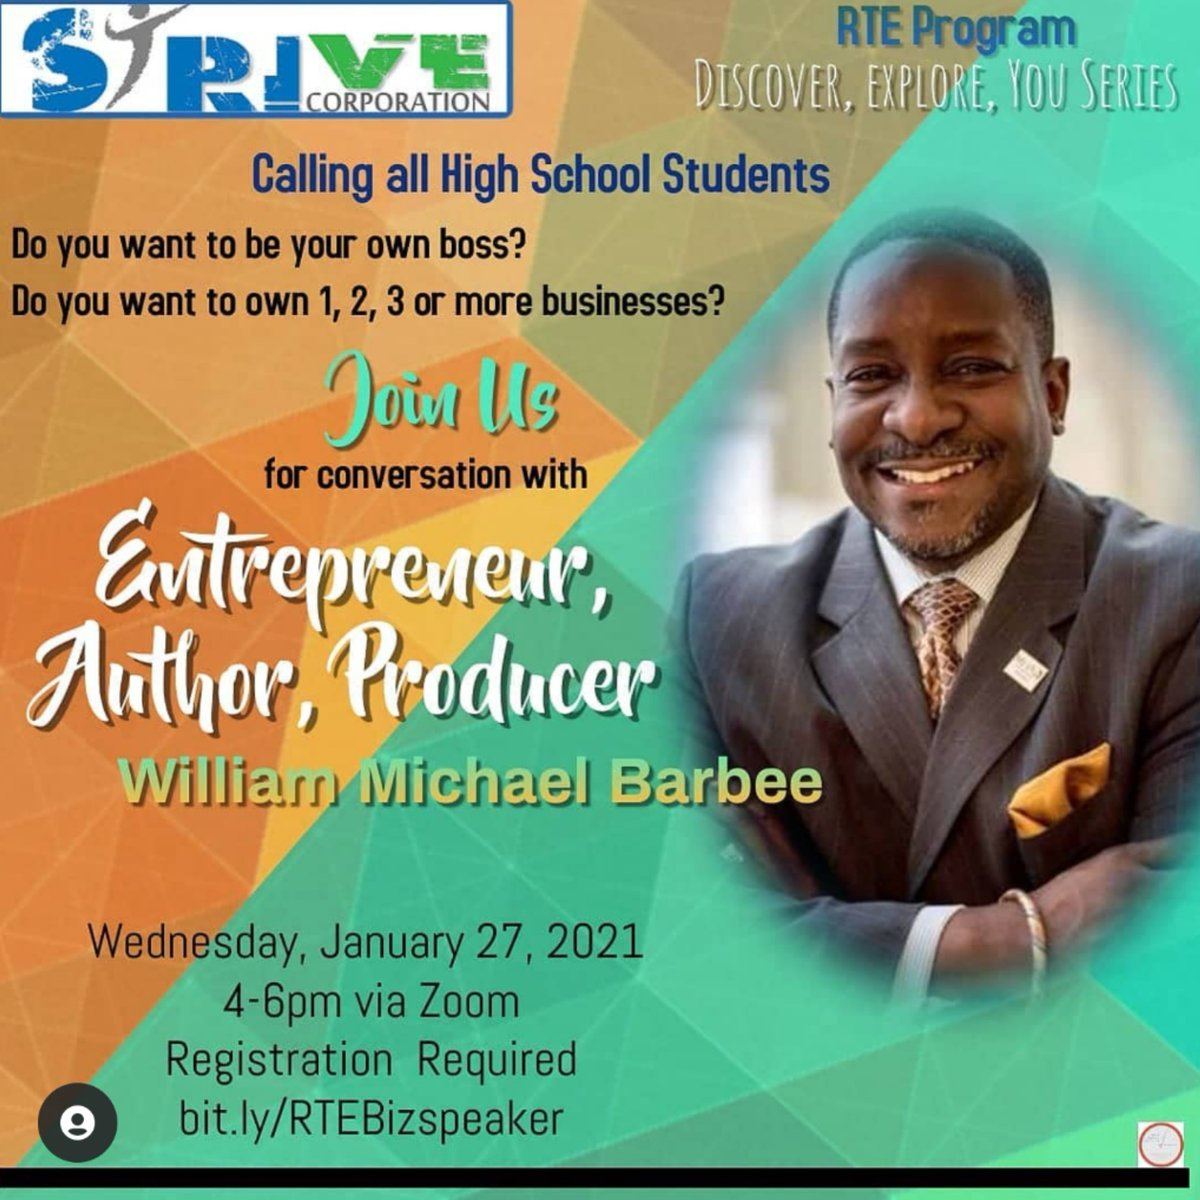 Do you know or have a high school student? If so this would be for them!!  ..How many of you want to be your own boss? Maybe even own 1 or multiple businesses?? Well, stay tuned for this exciting opportunity with@strivecares   #togetherstriveforsuccess🔥 #striveforgreatness